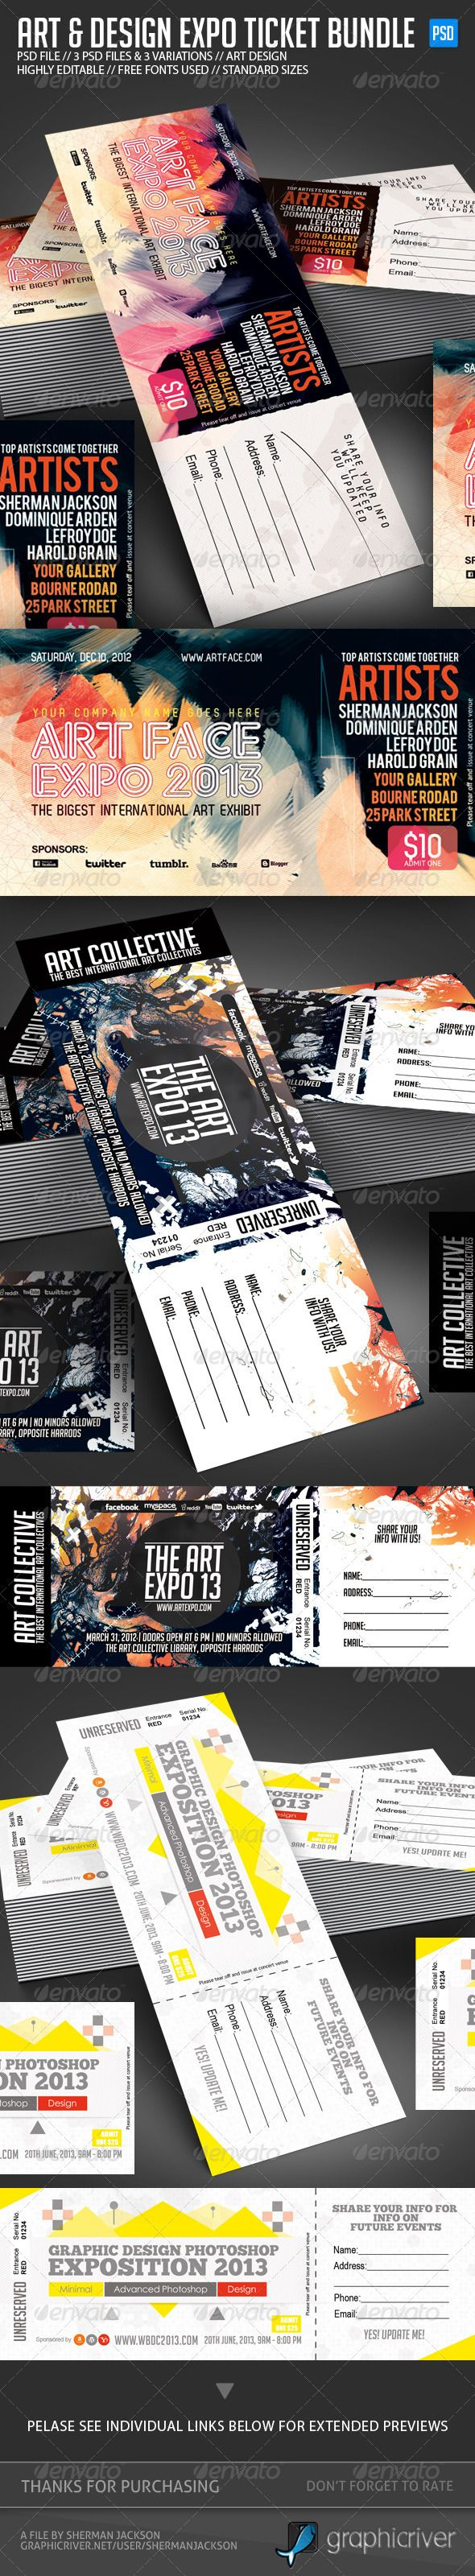 Design & Art Expo Show Passes/Tickets Bundle